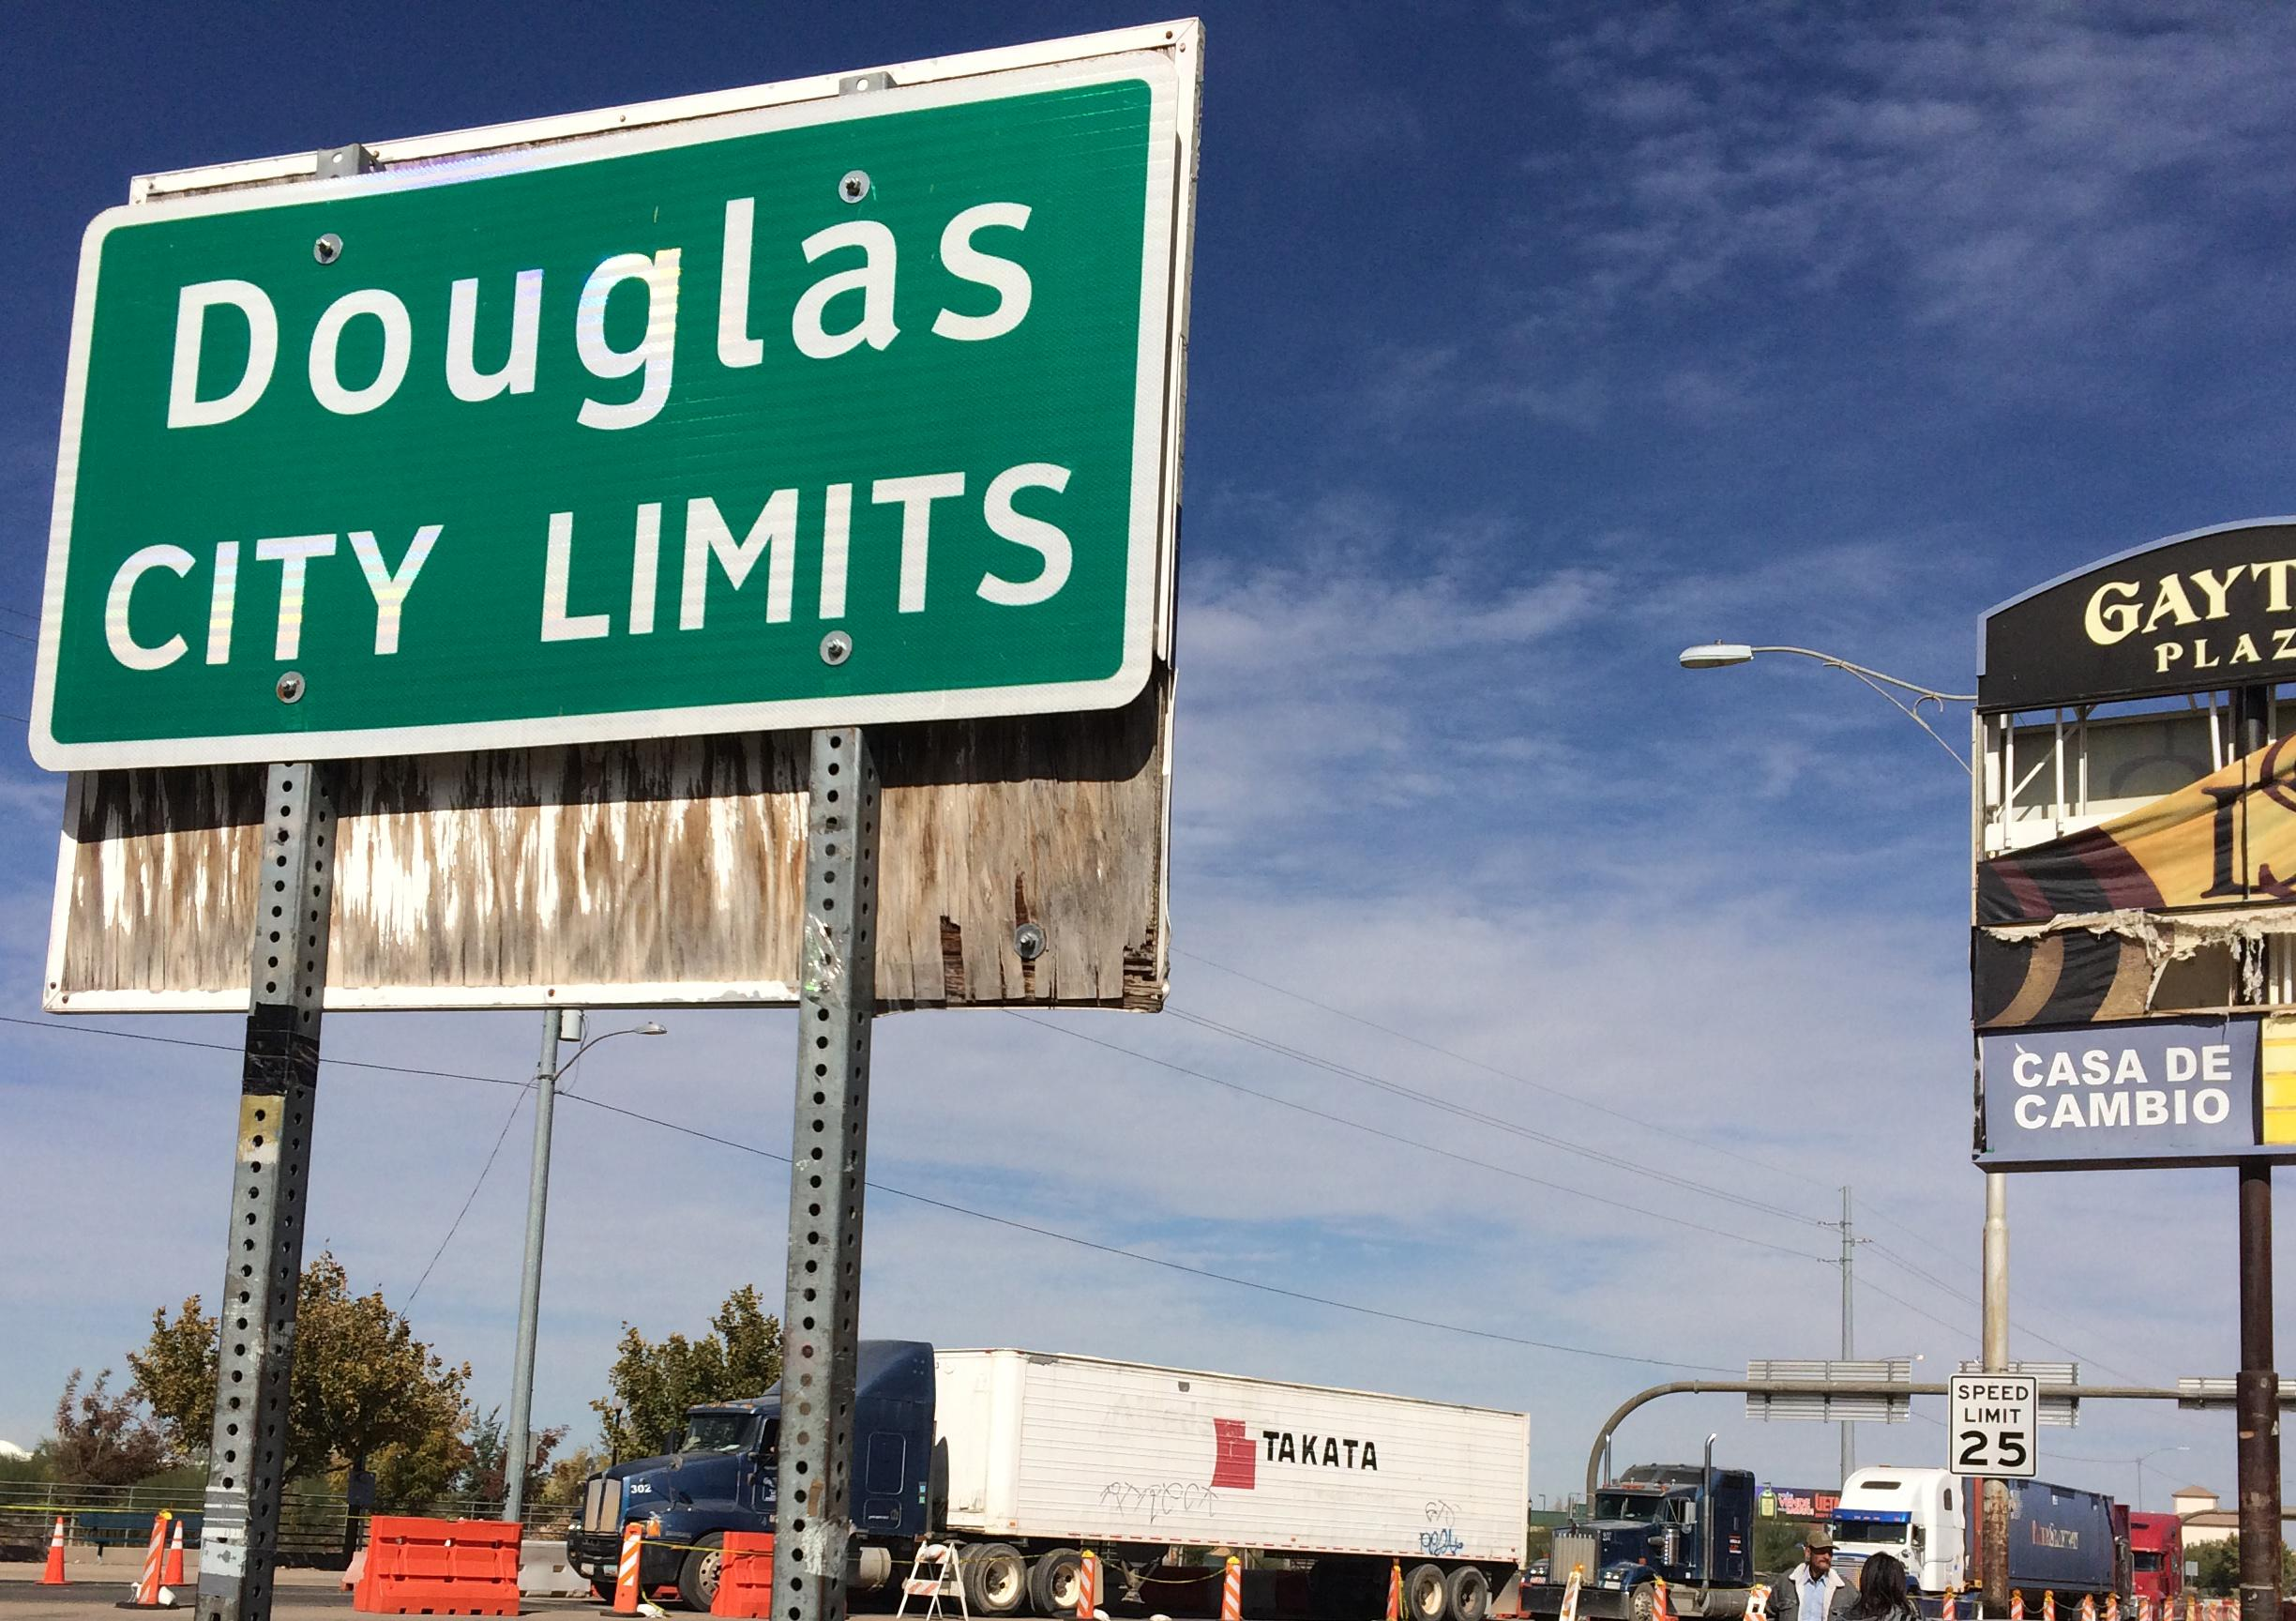 Douglas city limits